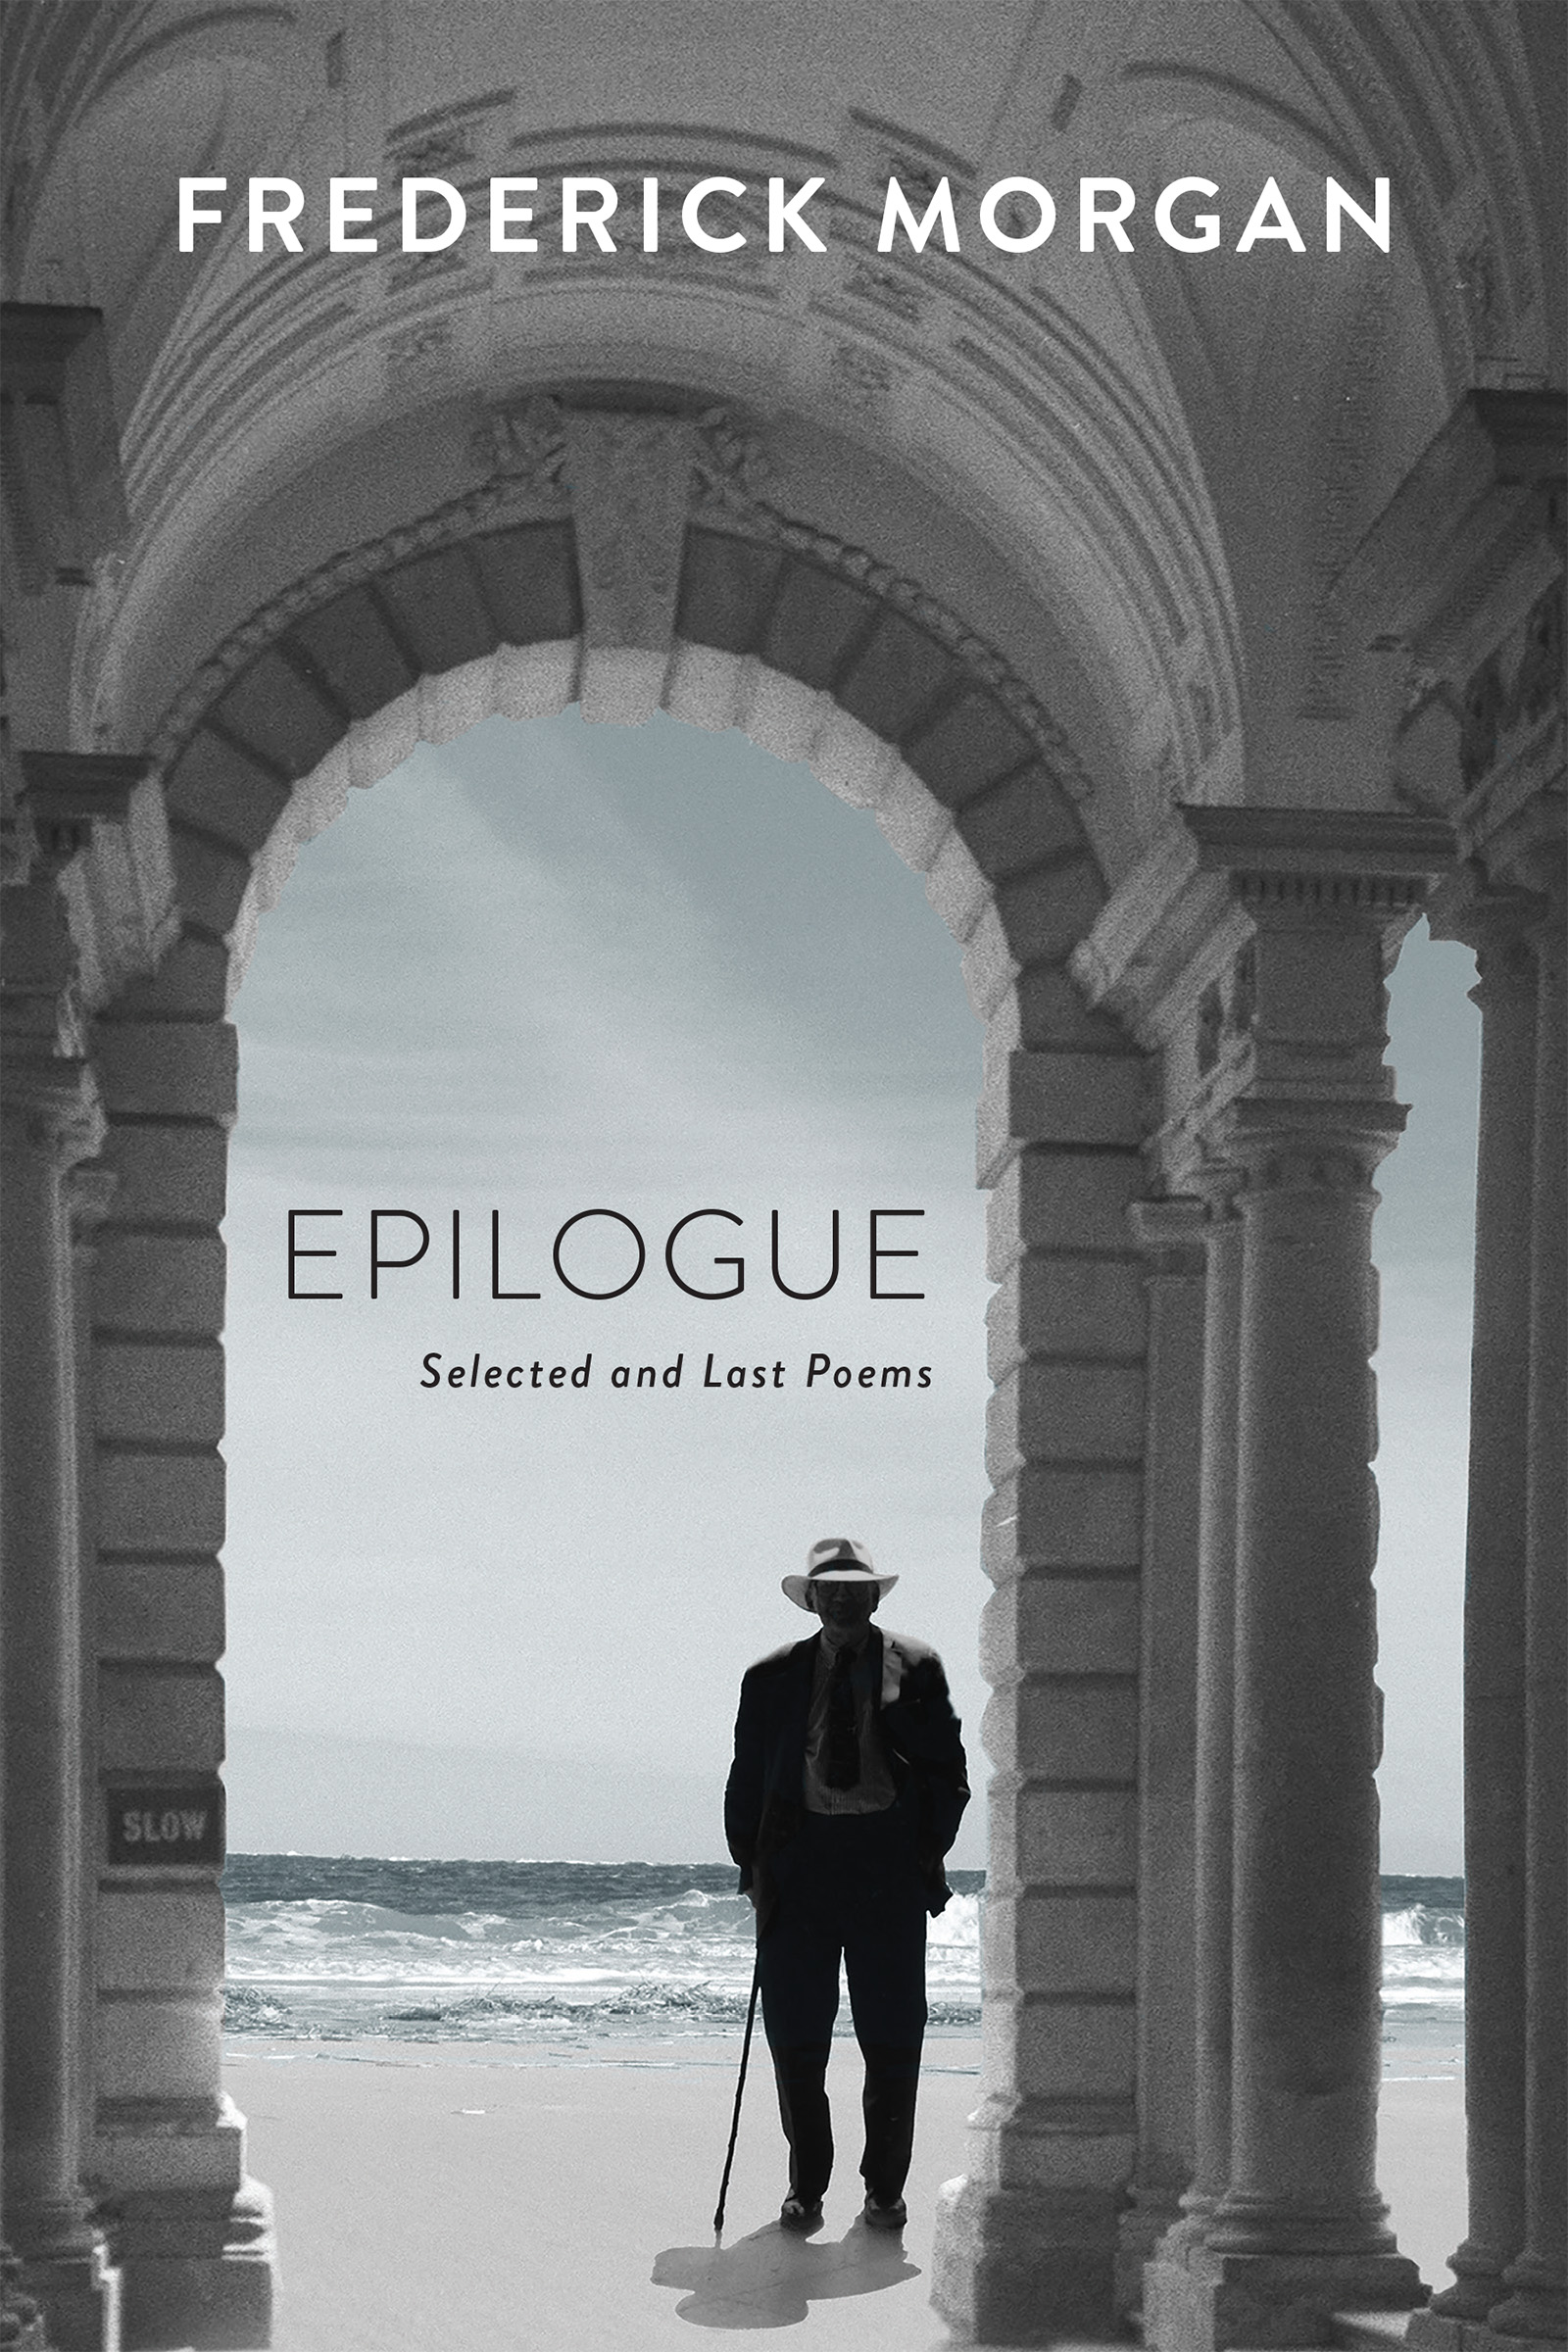 """A man stands under a marble arch looking out at a beach, white text says """"Frederick Morgan"""" at the top, text in the middle says """"Epilogue Selected and Last Poems"""""""